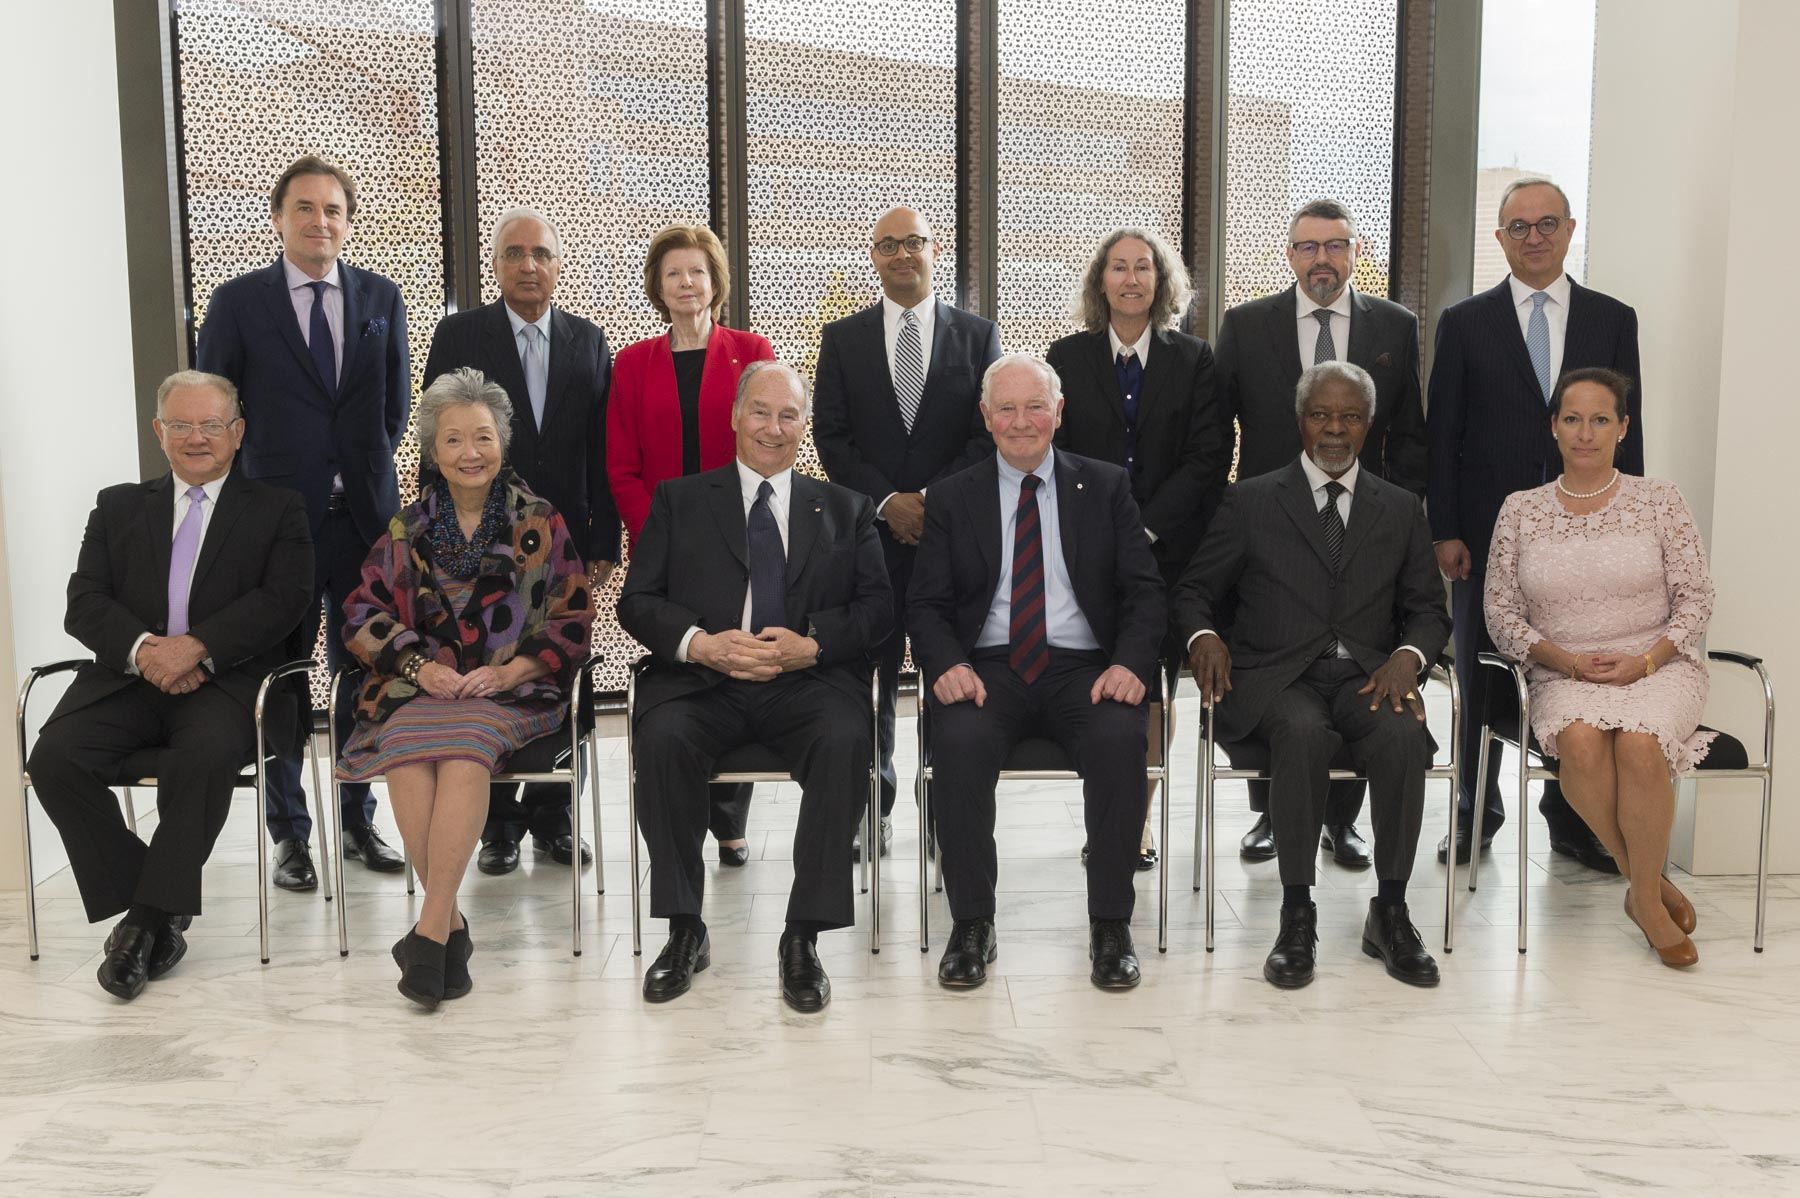 The Governor General and His Highness the Aga Khan posed for a photo with the Global Centre for Pluralism Board Members.